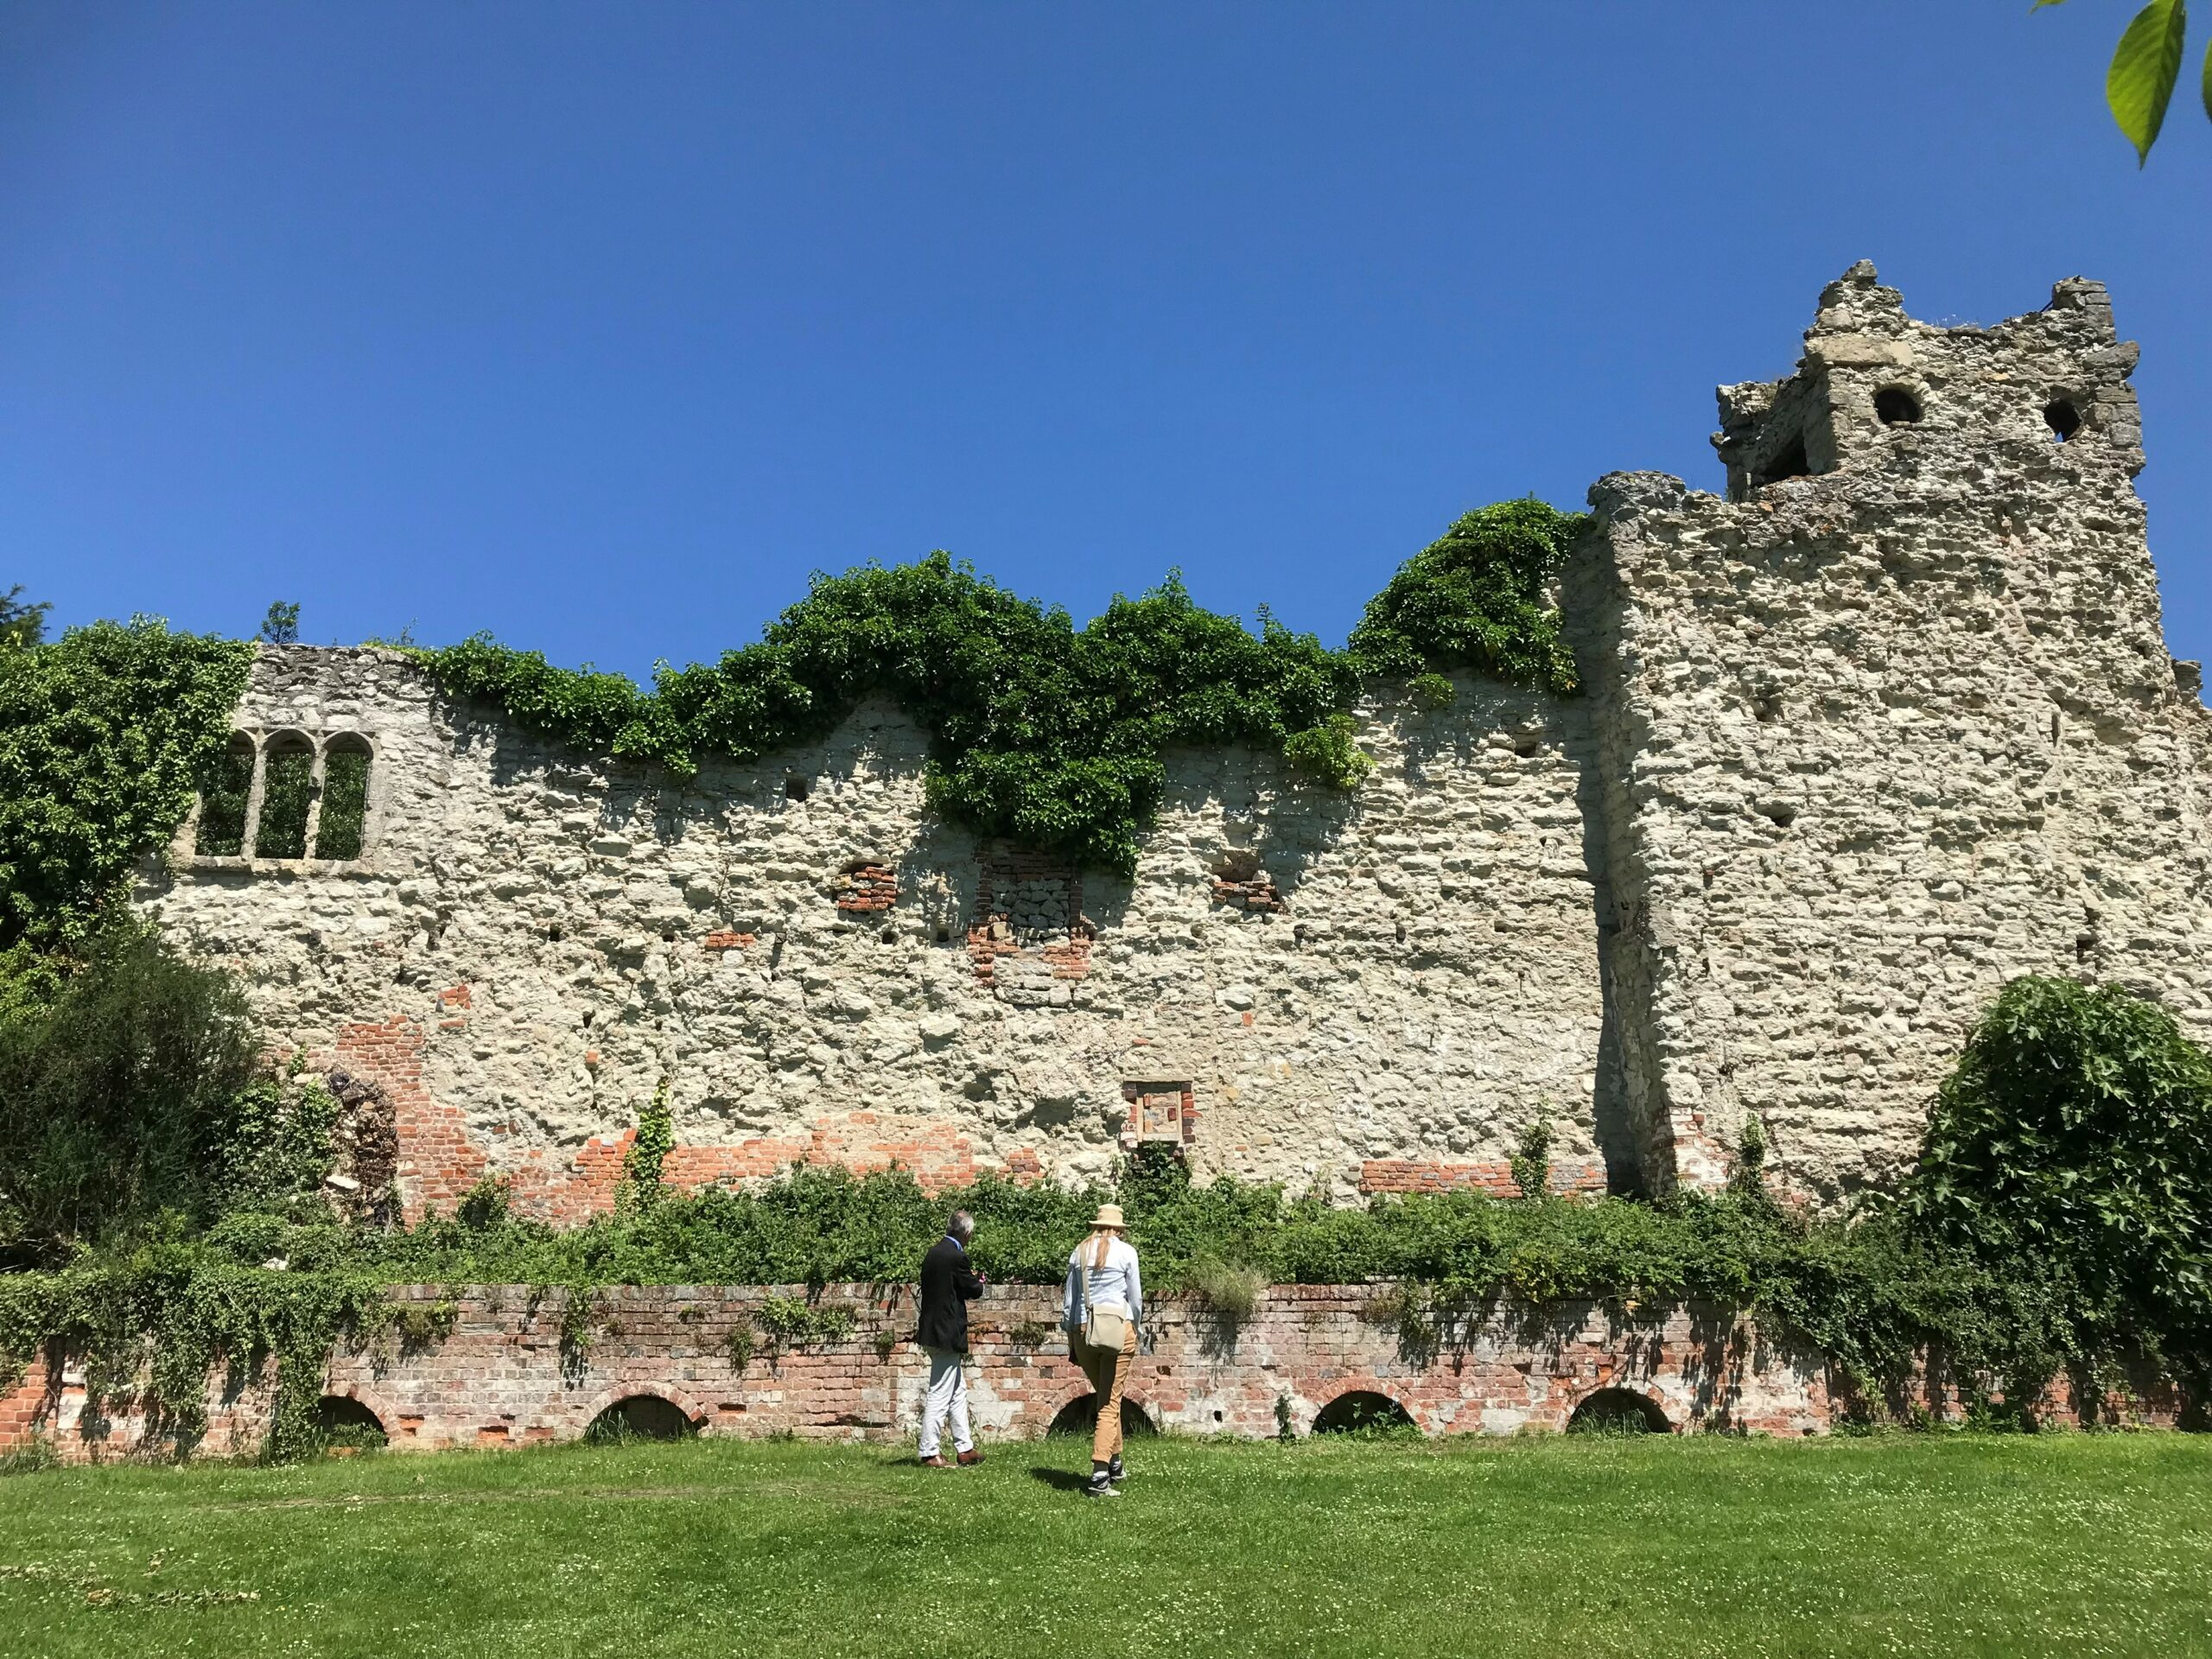 Oxfordshire's Wallingford Castle ruins to undergo conservation